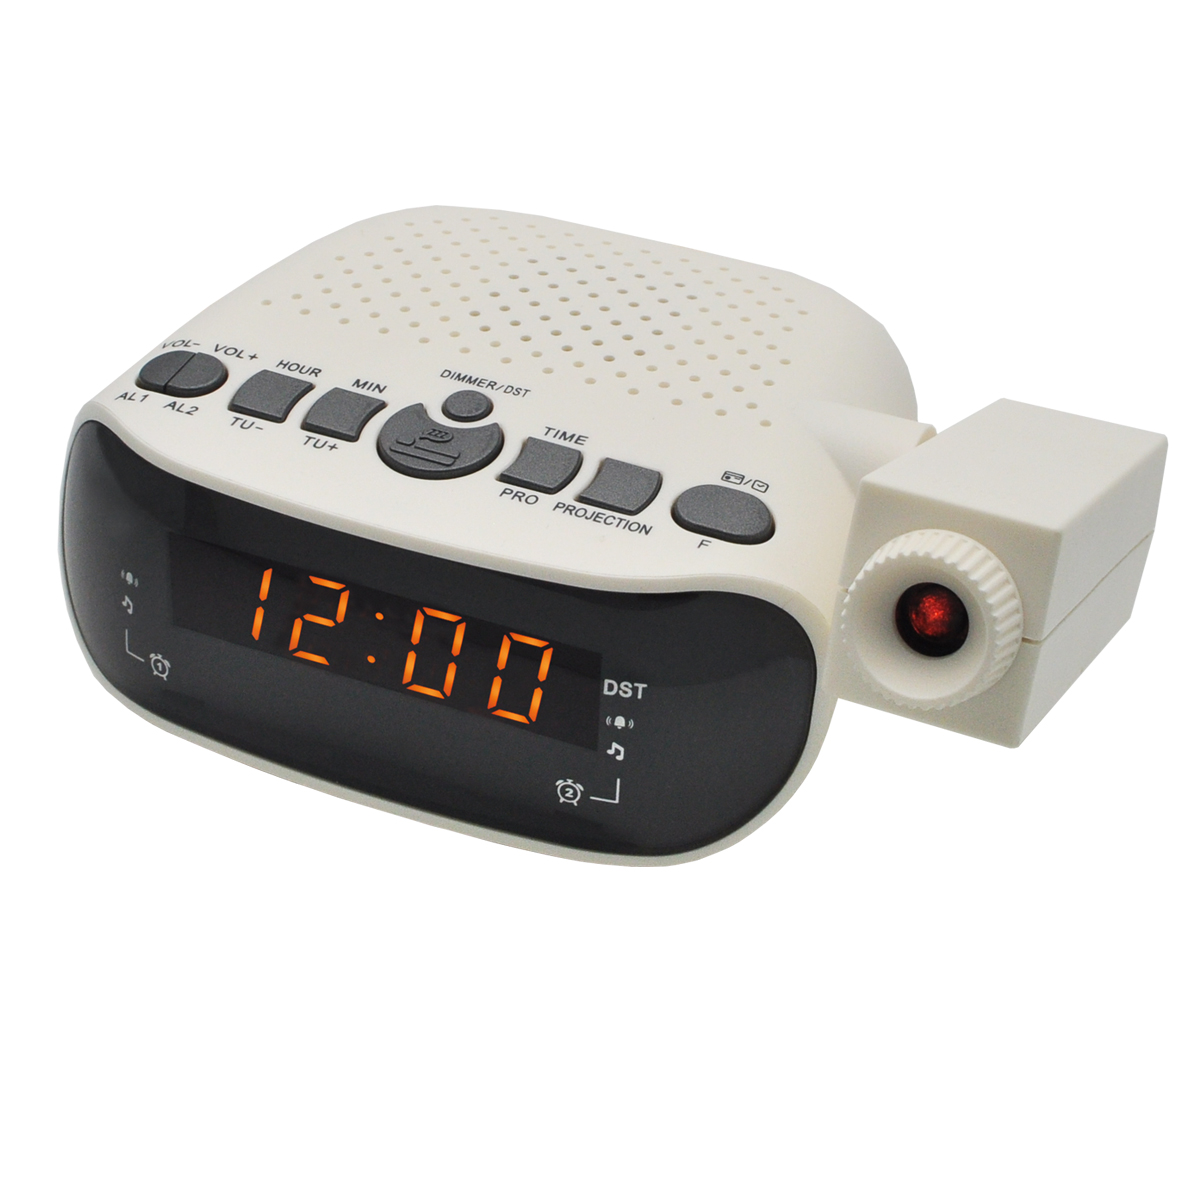 radio alarm clock too bright best alarm clocks reviews 2016 home alarm clocks inteliset clock. Black Bedroom Furniture Sets. Home Design Ideas